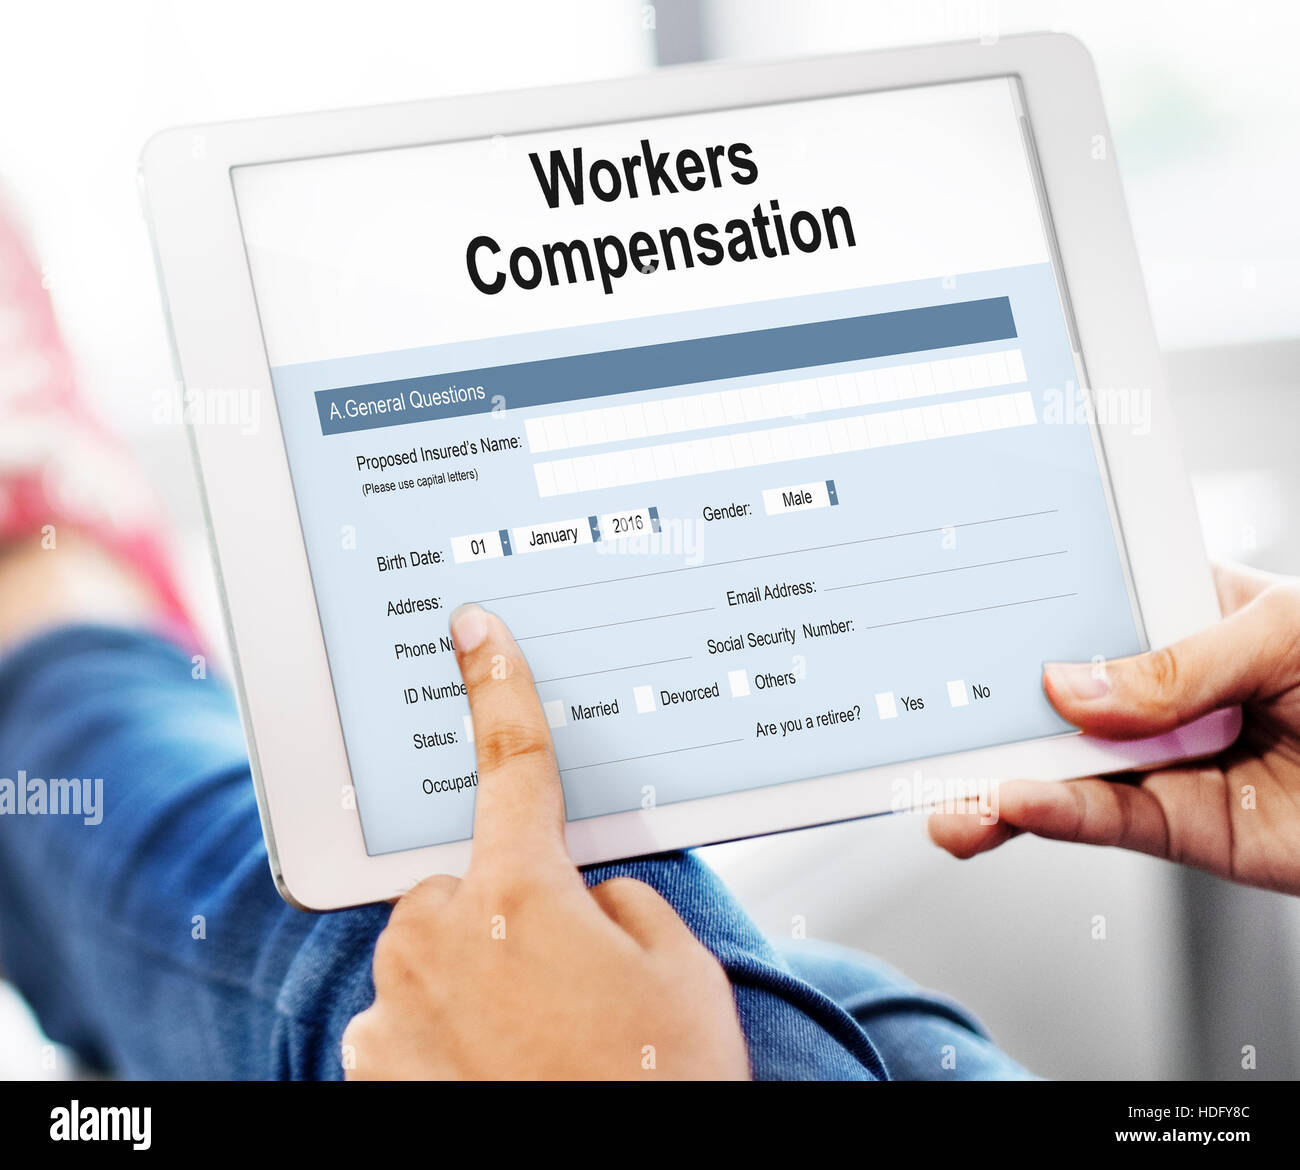 Work Injury Compensation Form Concept - Stock Image